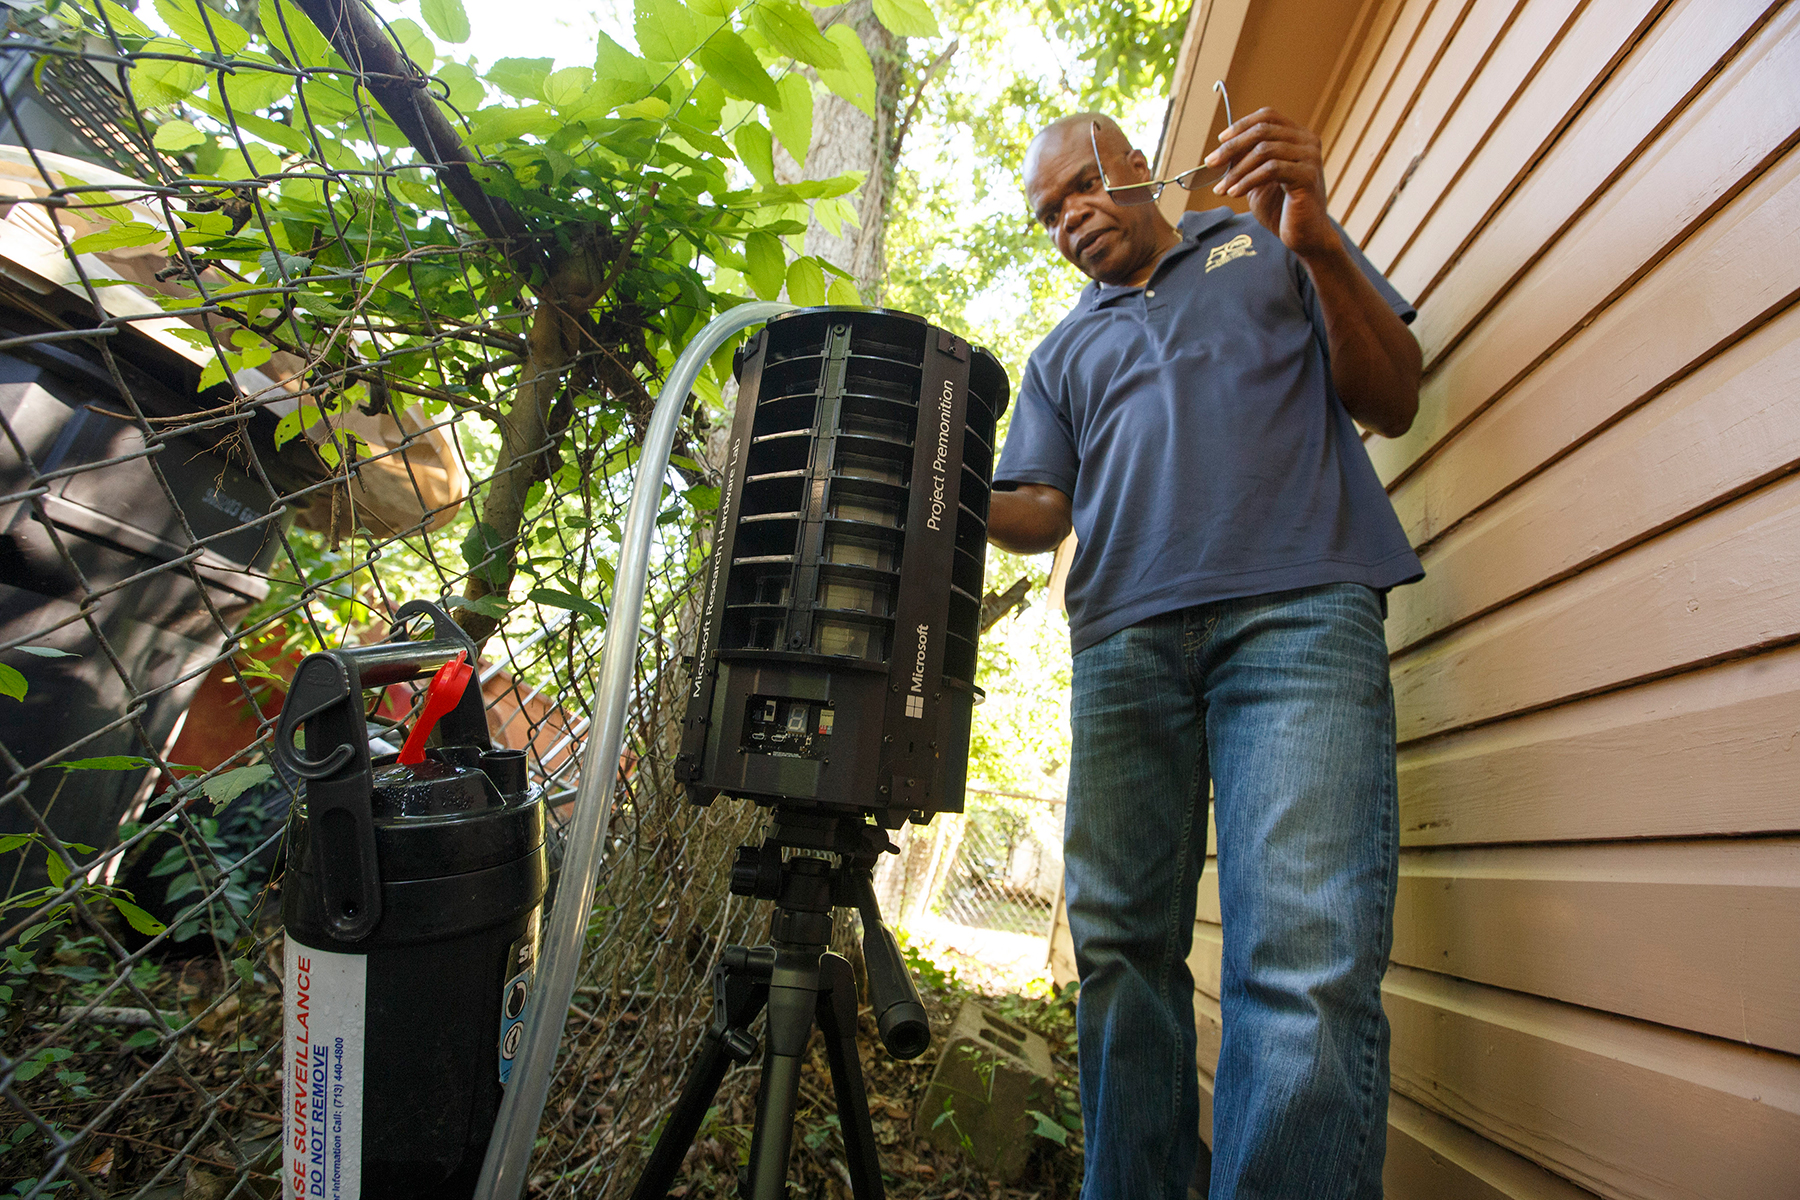 Max Vigilant, a surveillance entomologist with the Harris County Public Health's Mosquito & Vector Control, checks a Microsoft-designed smart mosquito trap in Houston, June 7, 2017. With 4.5 million people in a hot, muggy metropolis built atop a bayou, Houston is a perfect target for the mosquito-borne Zika virus. But it may be better prepared than any other urban center to stop an outbreak. (Michael Stravato/The New York Times)